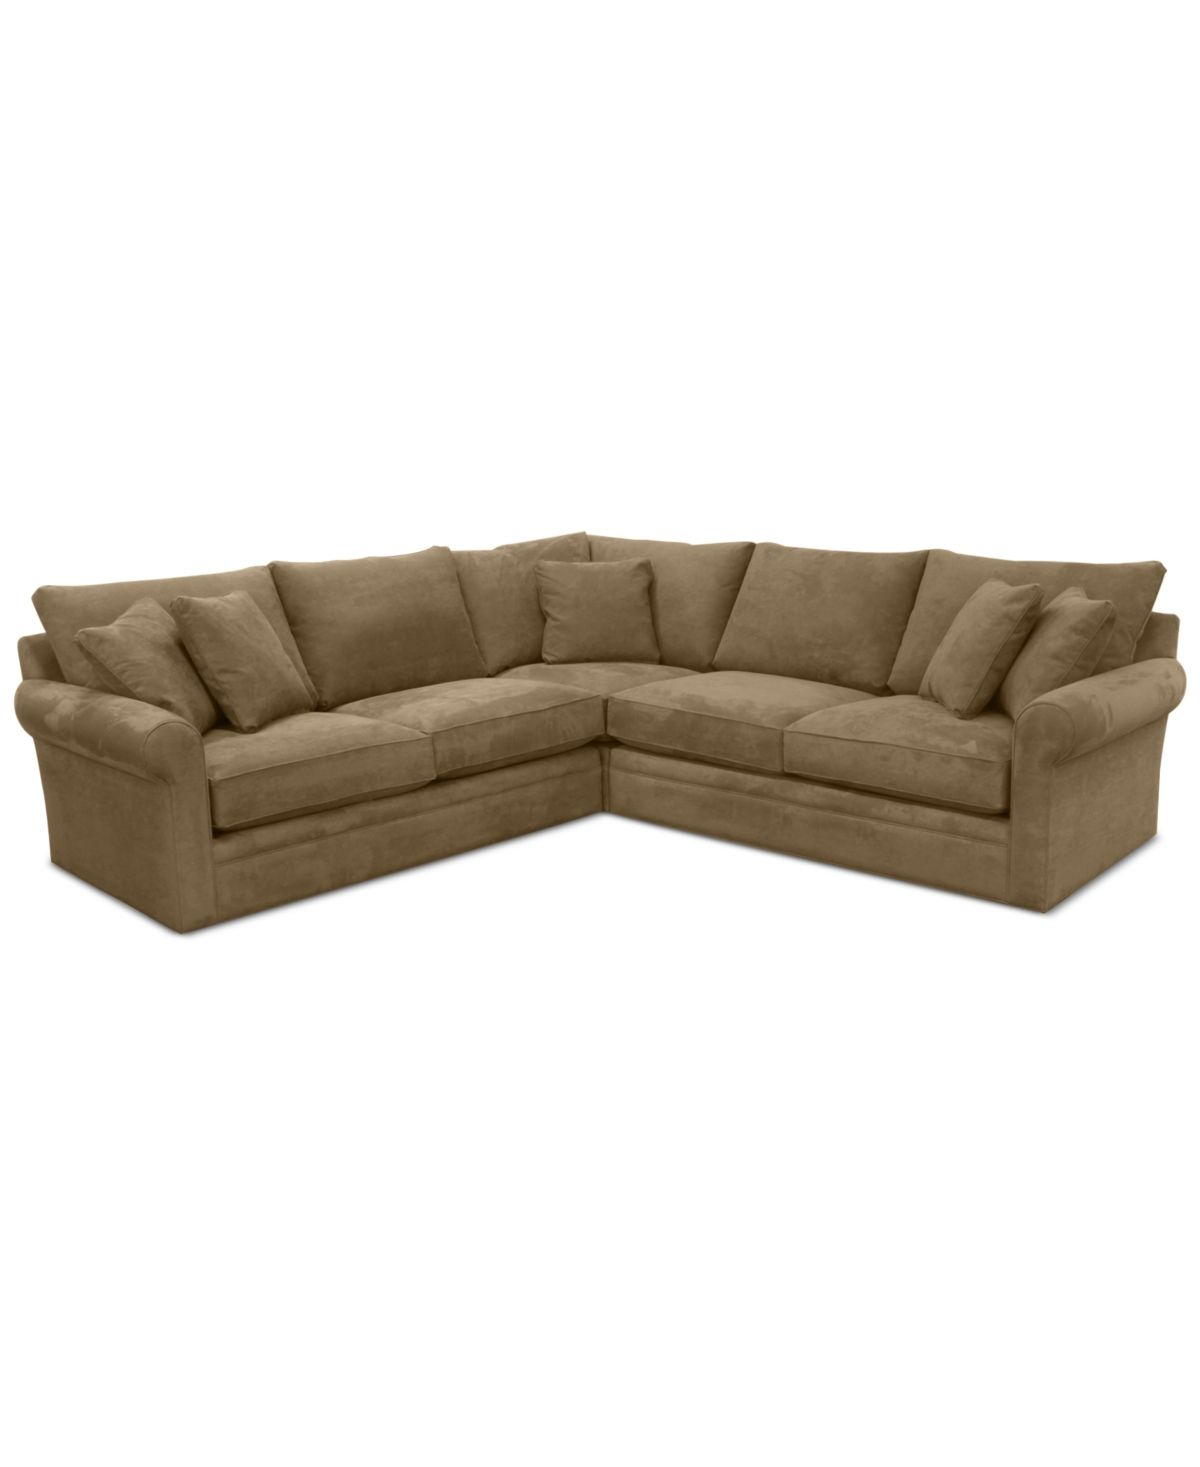 Doss Ii 3 Pc Fabric Sectional With Apartment Sofa Doss Otter